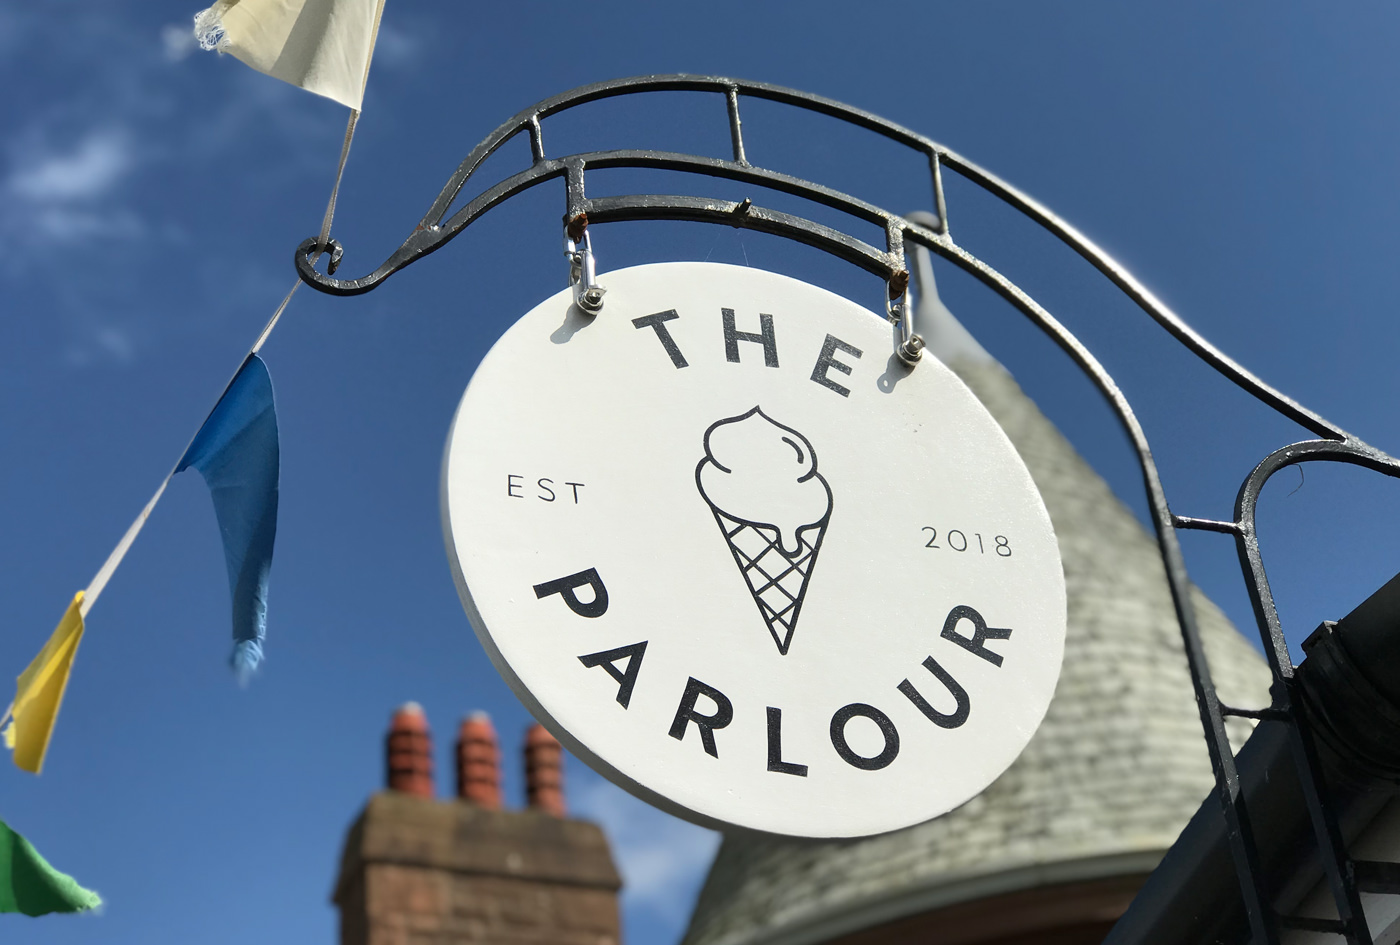 The Parlour hanging signage